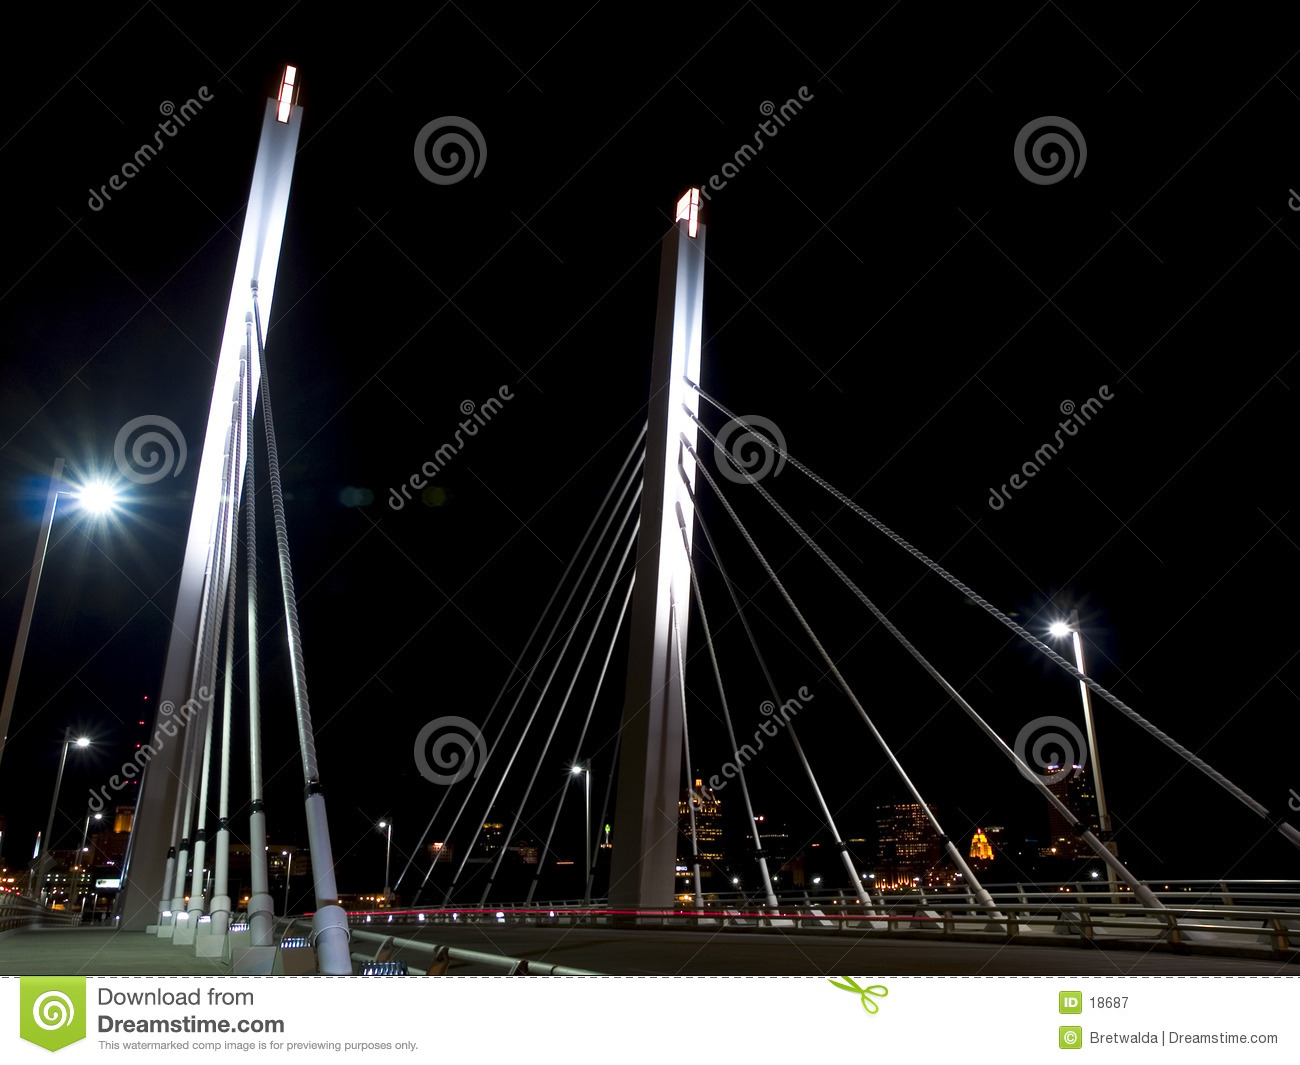 Nuit Bridge2